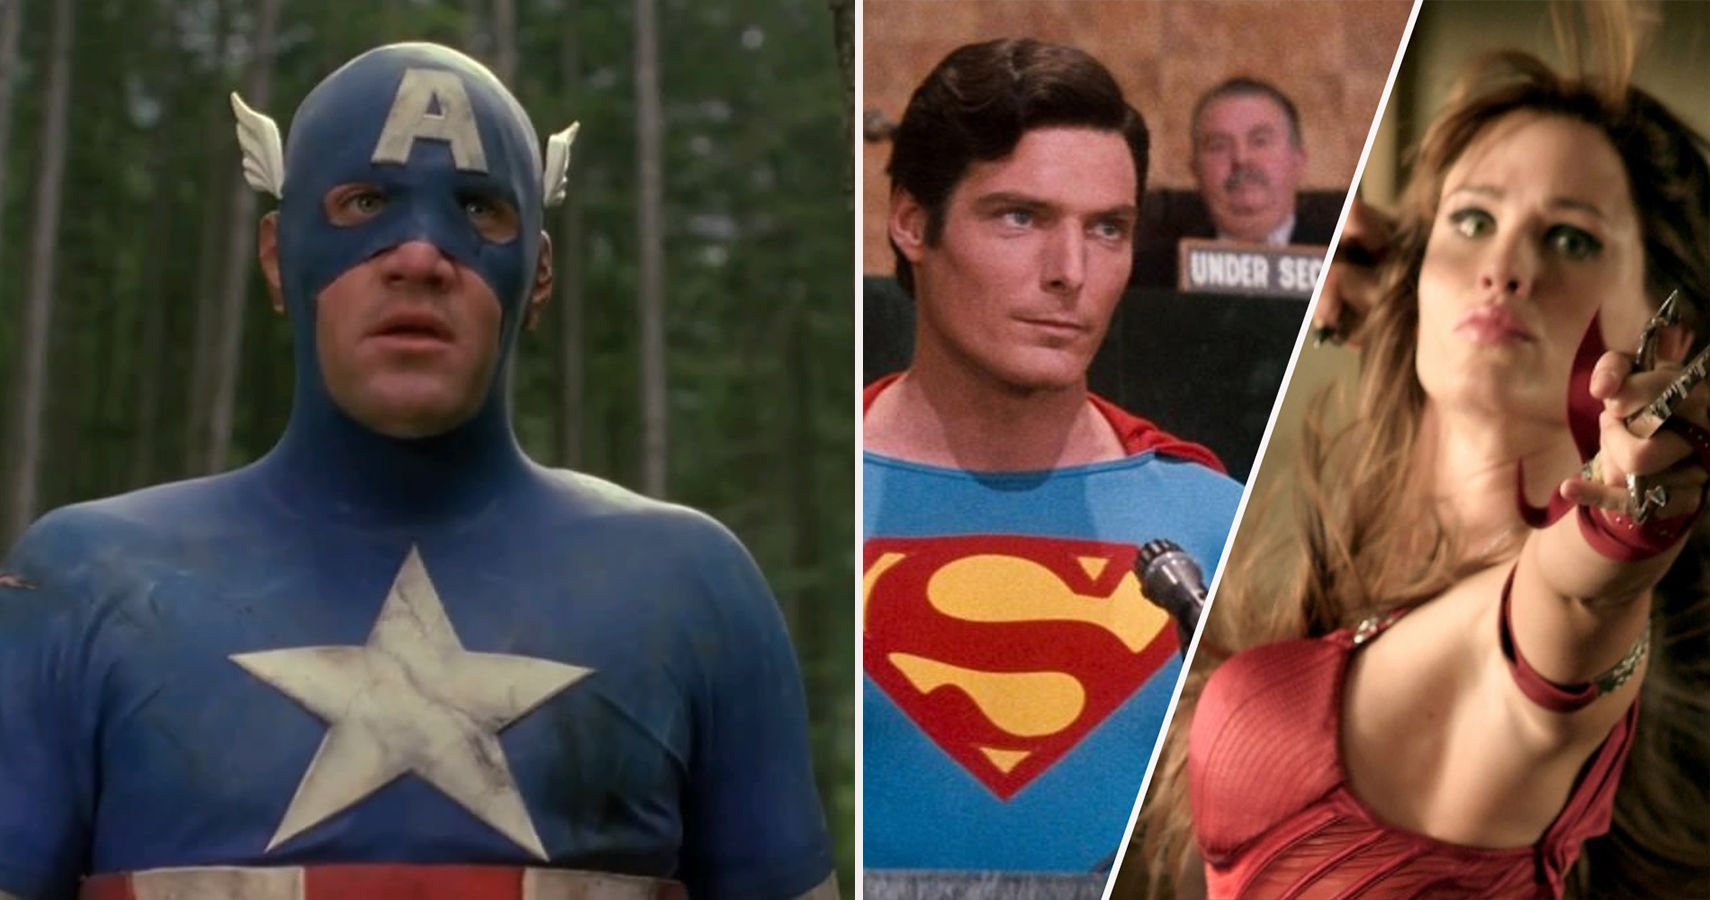 The 15 Worst Superhero Movies According To Rotten Tomatoes And